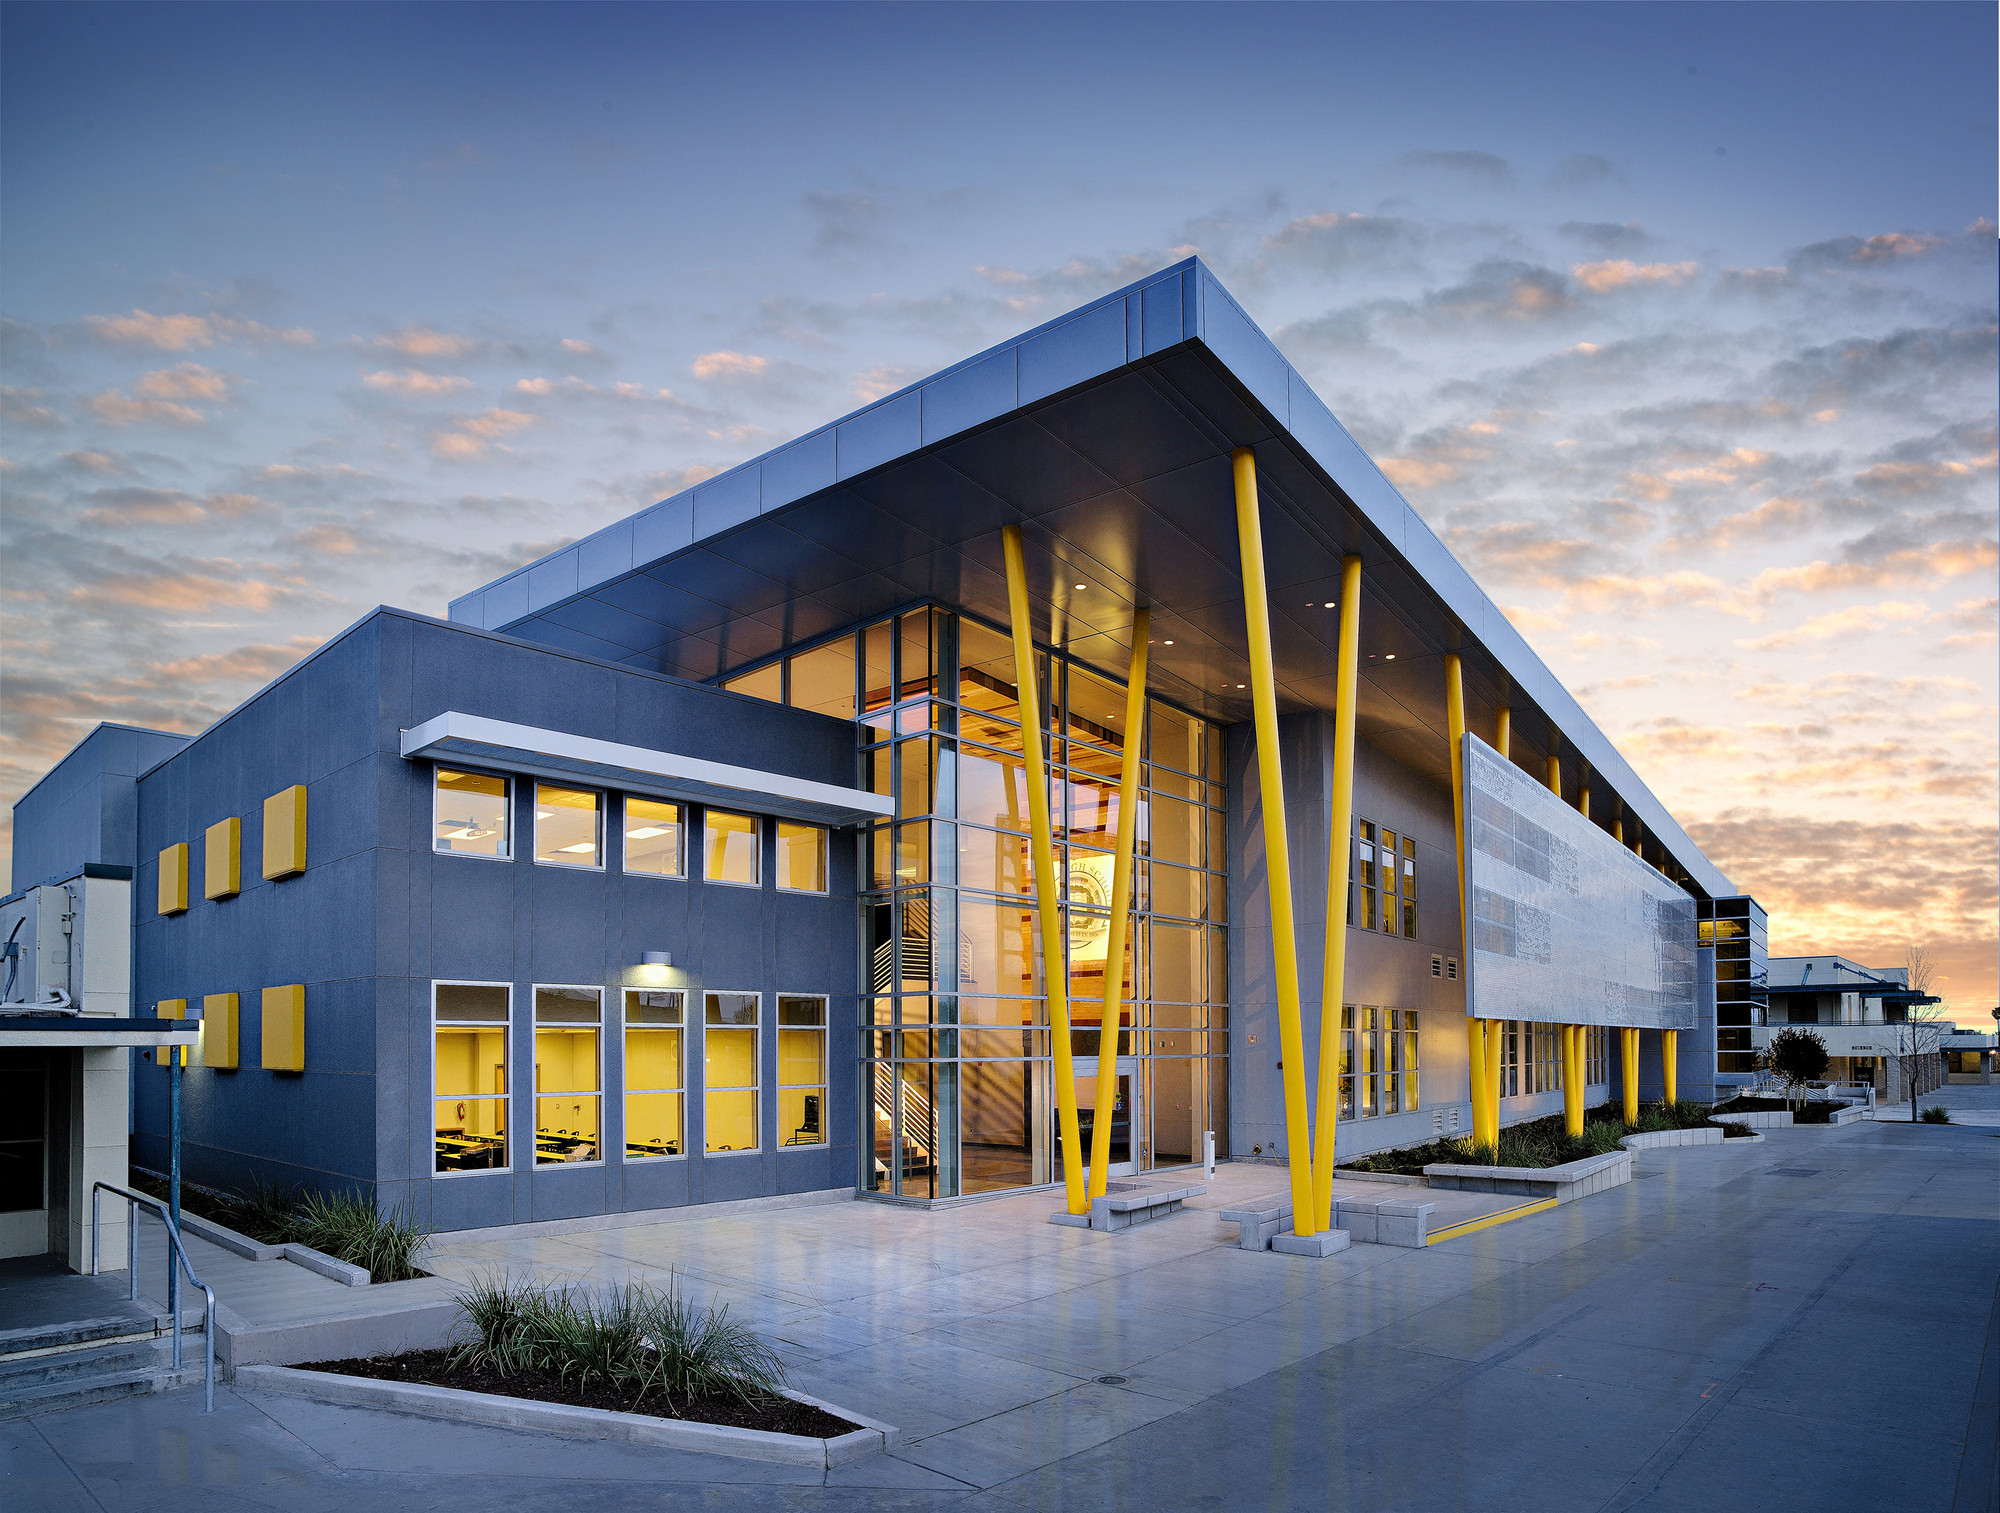 From STEM To STEAM: The Value of Art, Edison High School Academic Building. Image © Paul Mullins